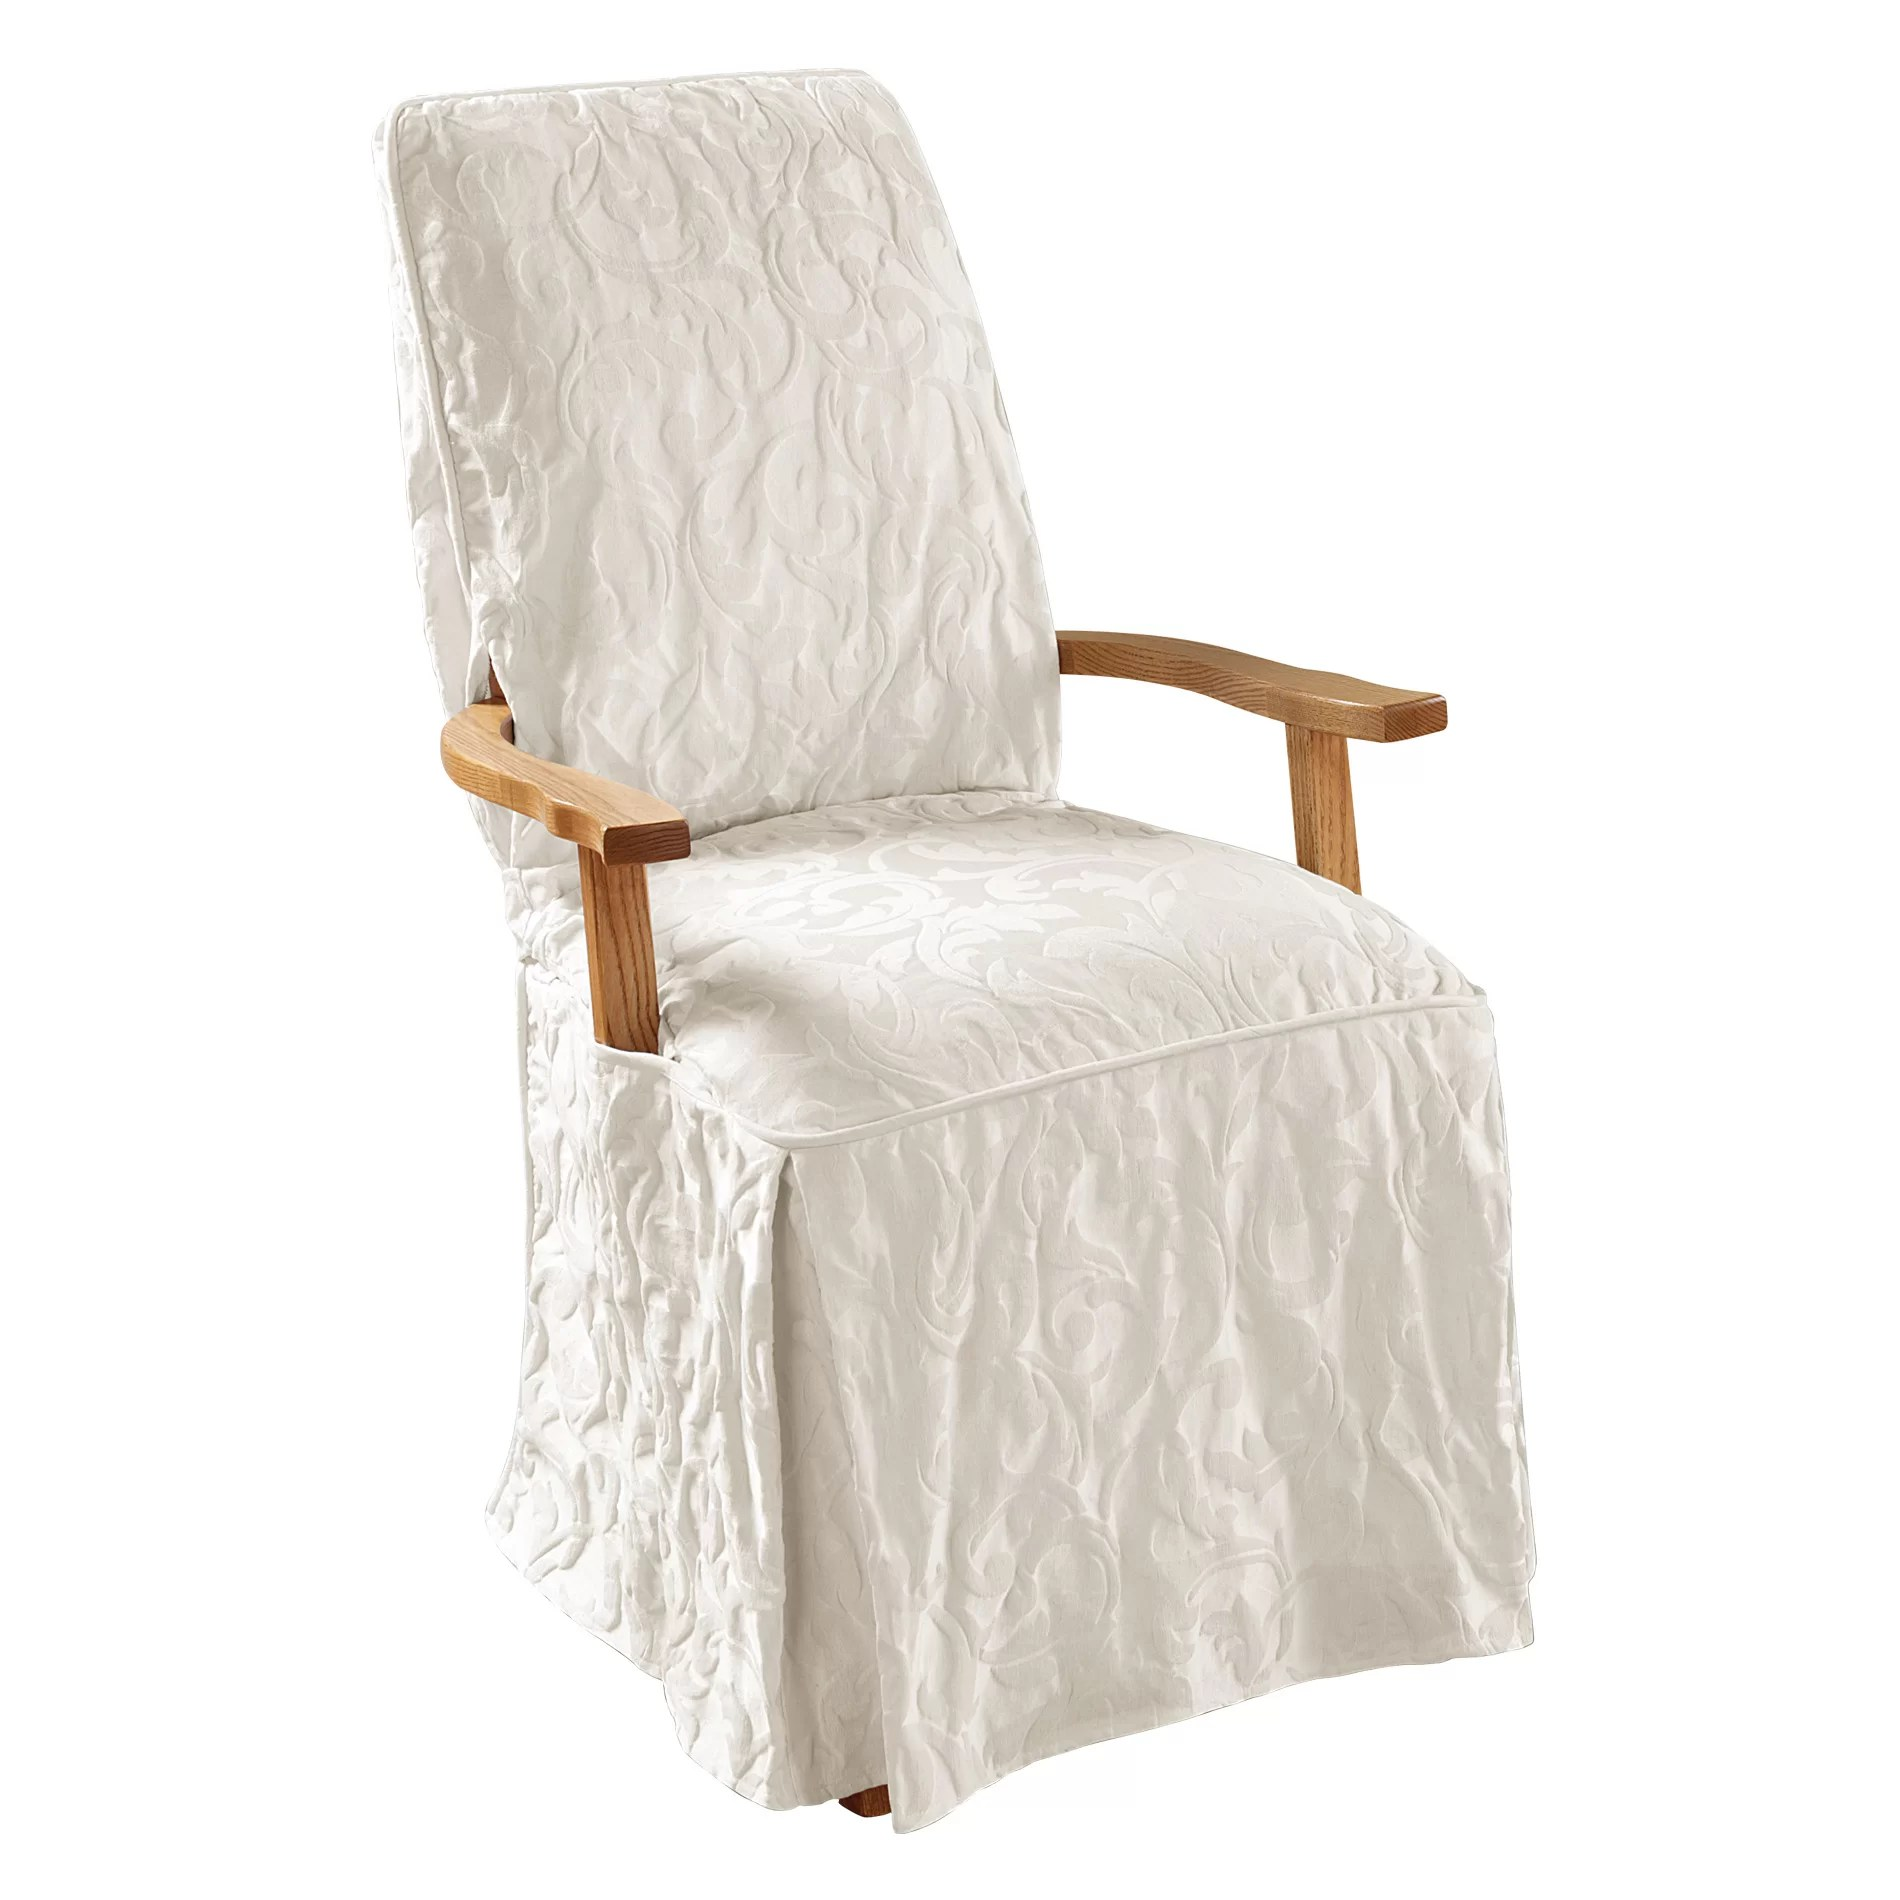 Damask Chair Matelasse Damask T Cushion Armchair Slipcover